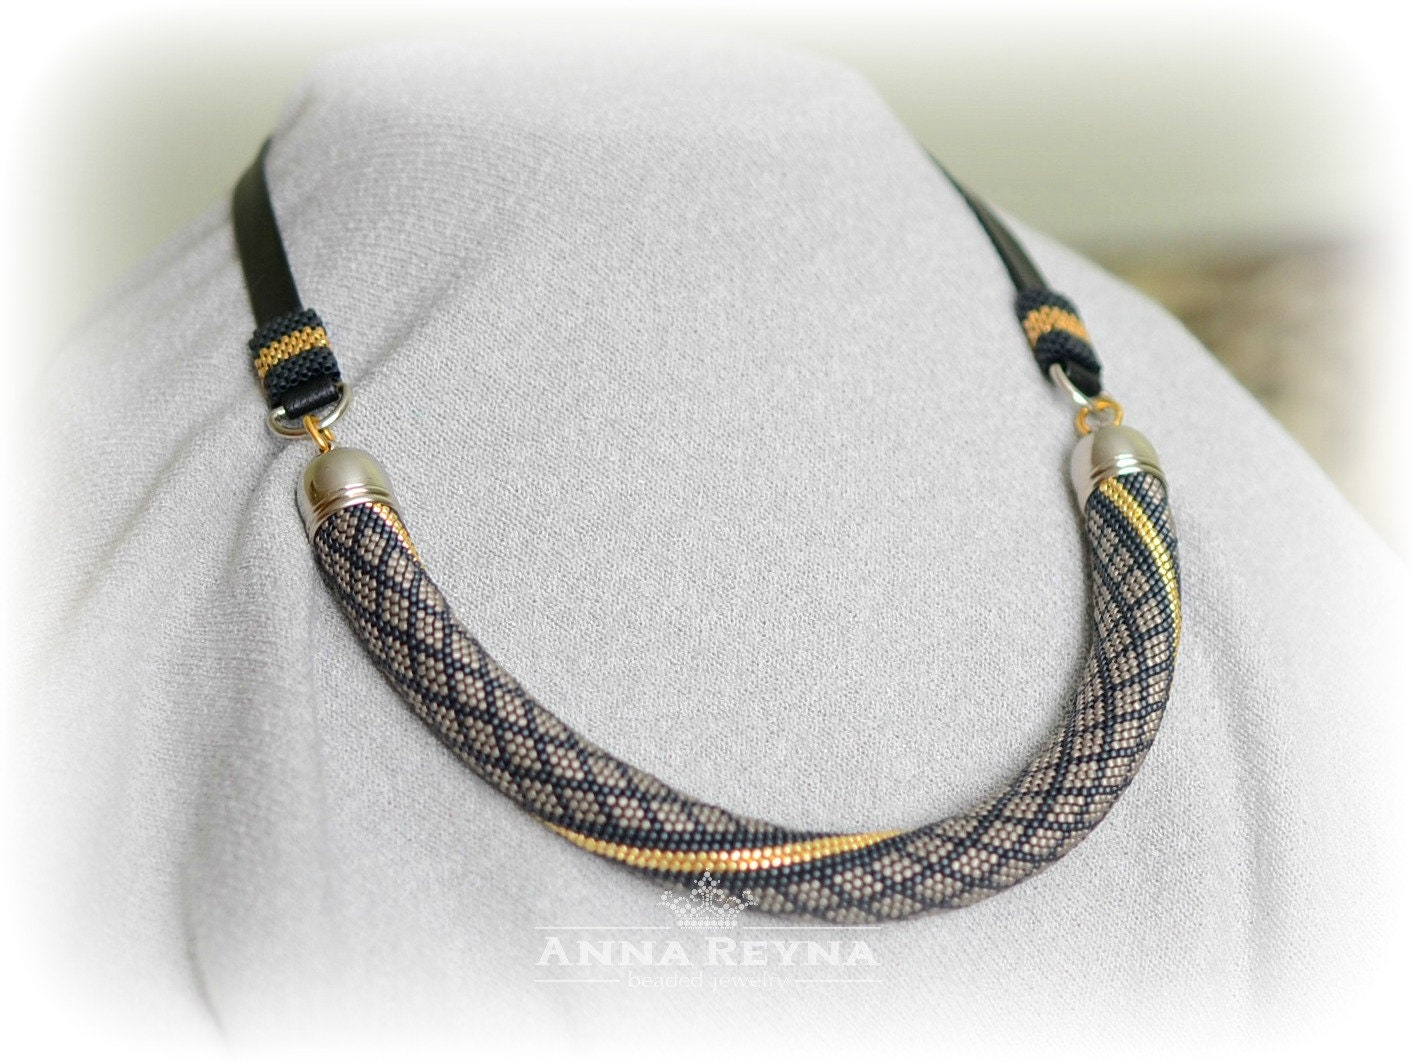 Rope bead necklace Bead Crochet Necklace Choker bead crochet Geometric bead necklace Rope bead crochet necklace Bead crochet rope